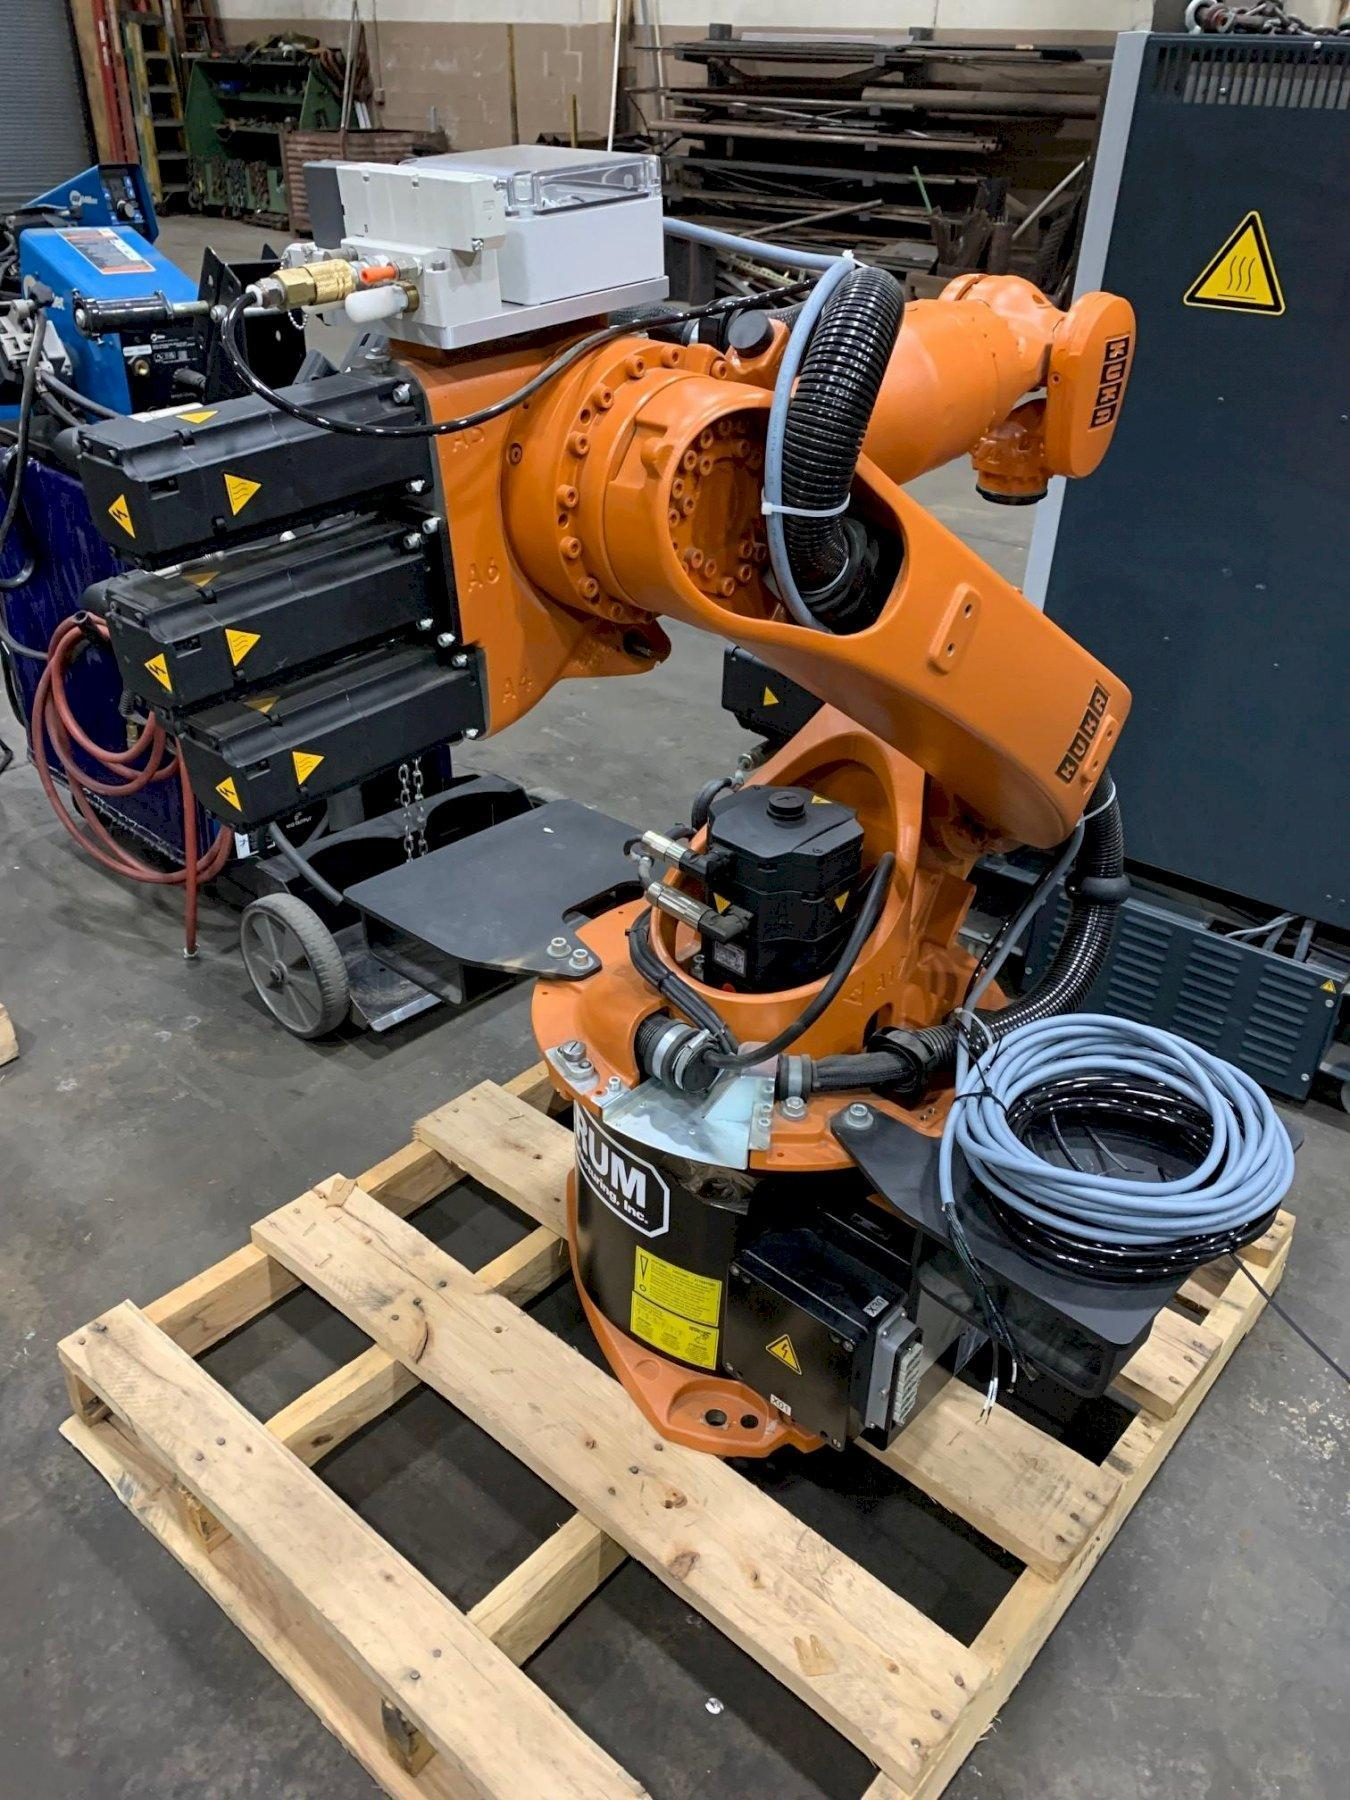 USED KUKA 6-AXIS ROBOTIC WELDING SYSTEM MODEL KR-16 W/KR C2 CONTROLLER, Stk# 10870, Year: 2009